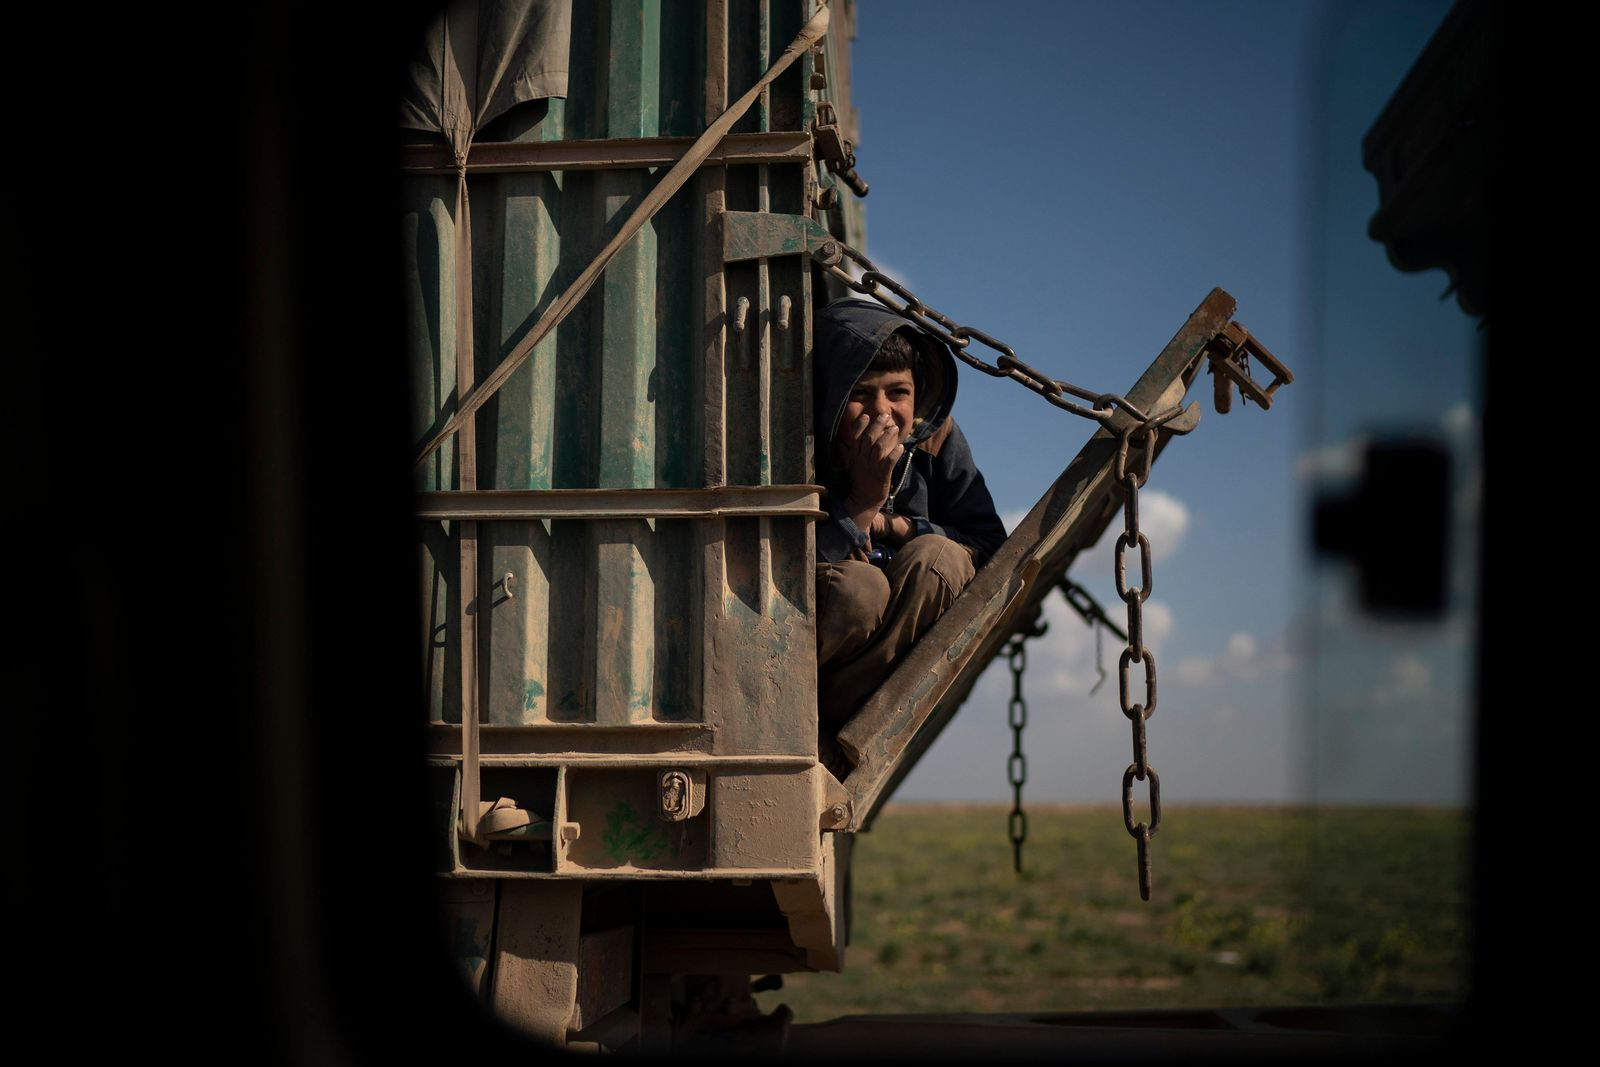 A boy rides in the back of a truck that is part of a convoy evacuating hundreds out of the last territory held by Islamic State militants, in Baghouz, eastern Syria, Wednesday, Feb. 20, 2019. The evacuation signals the end of a week long standoff and opens the way to U.S.-backed Syrian Democratic Forces (SDF) recapture the territory. (AP Photo/Felipe Dana)